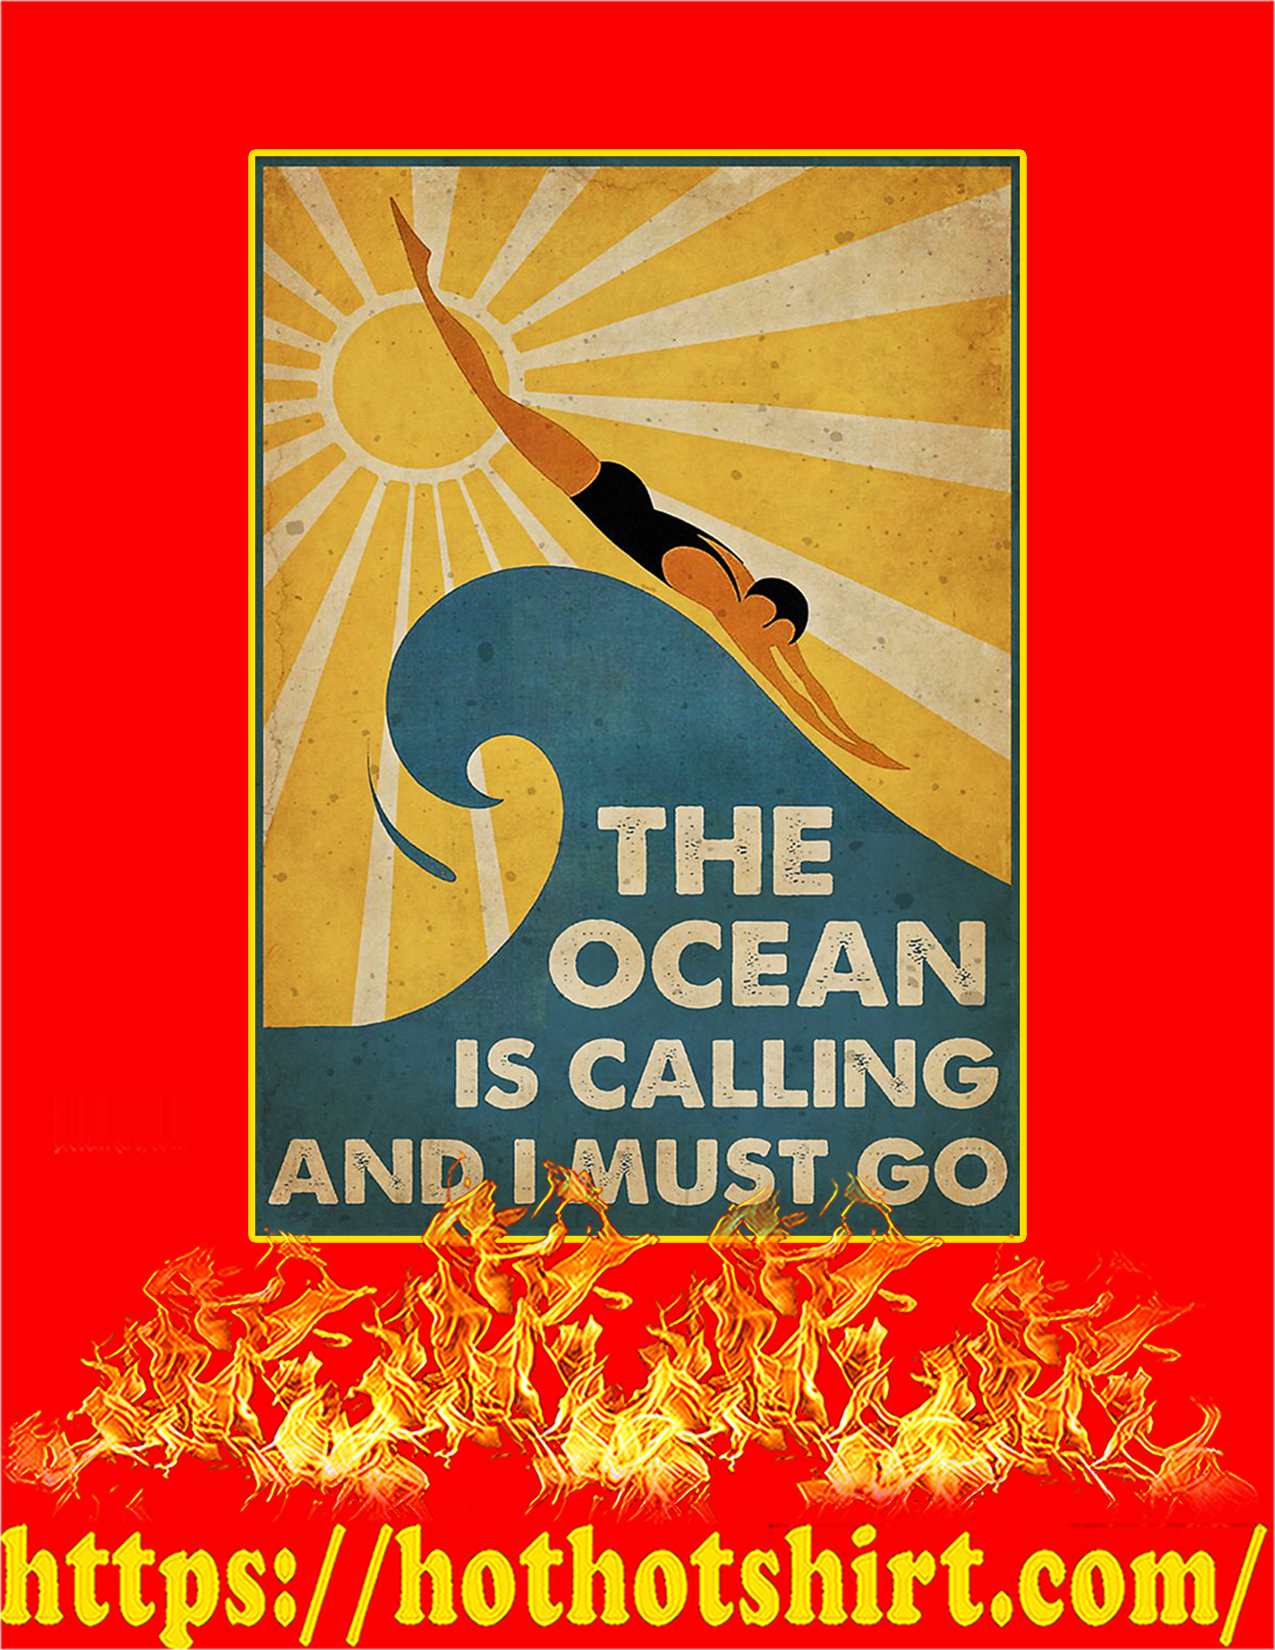 Swimming The ocean is calling and I must go poster - A2